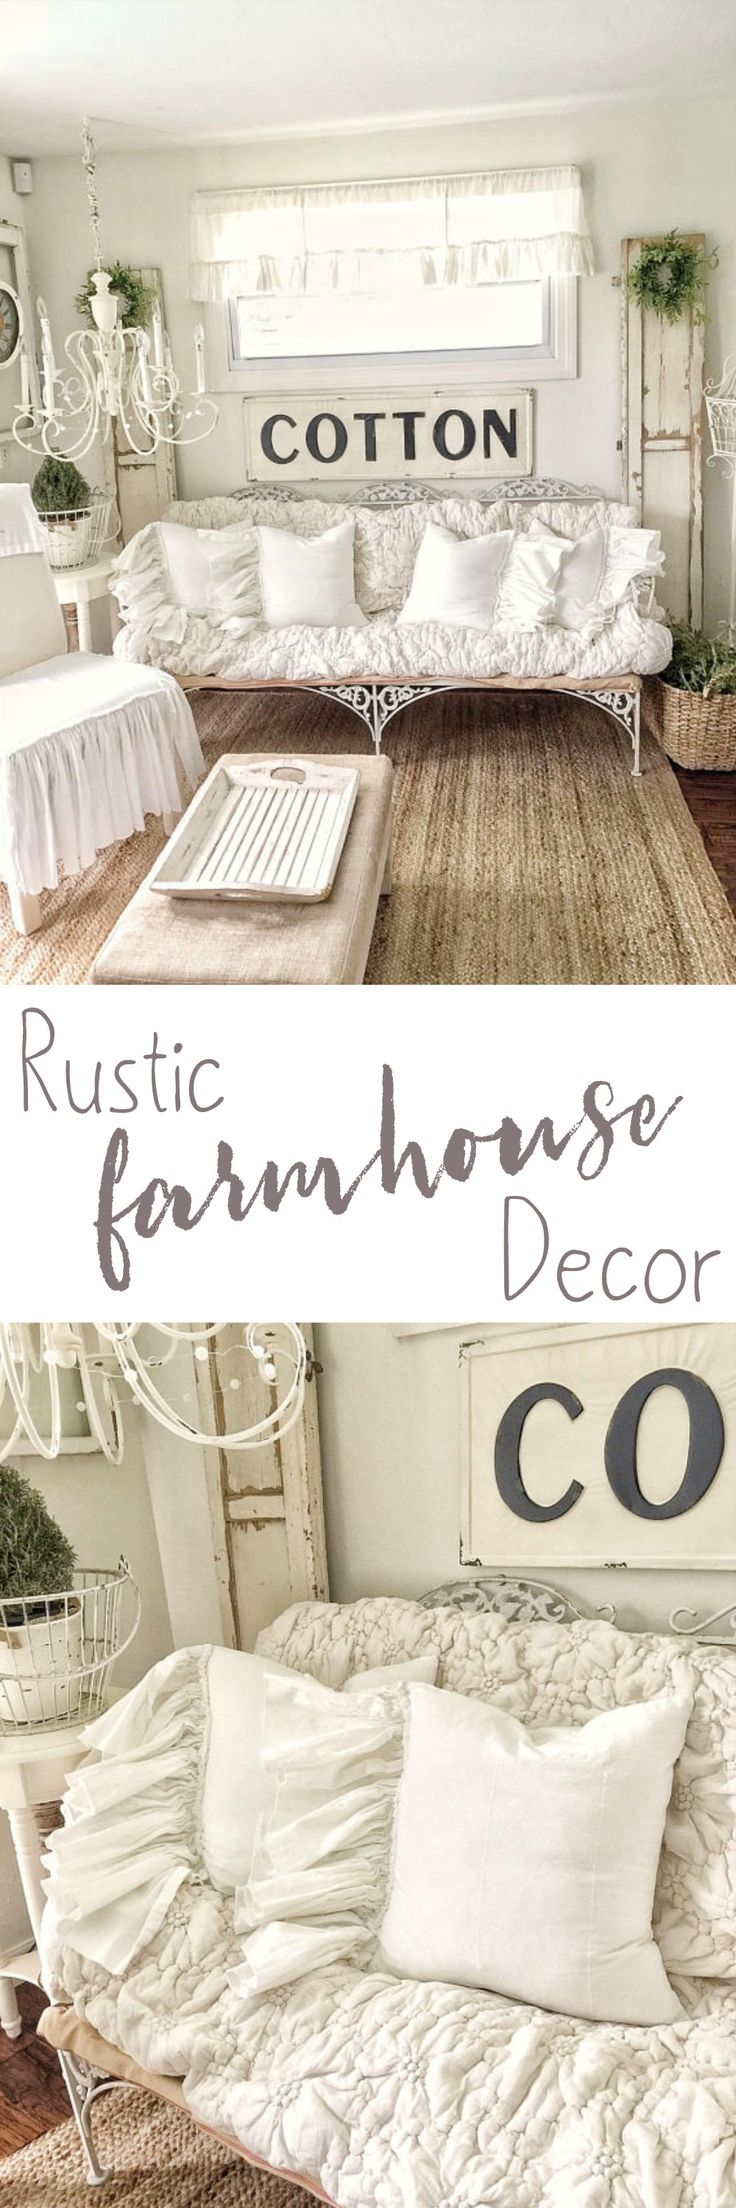 Cute shabby chic rustic farmhouse decor! This would be perfect for a living room or entryway. Any rustic farmhouse decor is just so perfect! #affiliate #farmhousestyle #rusticdecor #shabbychic #homestyle